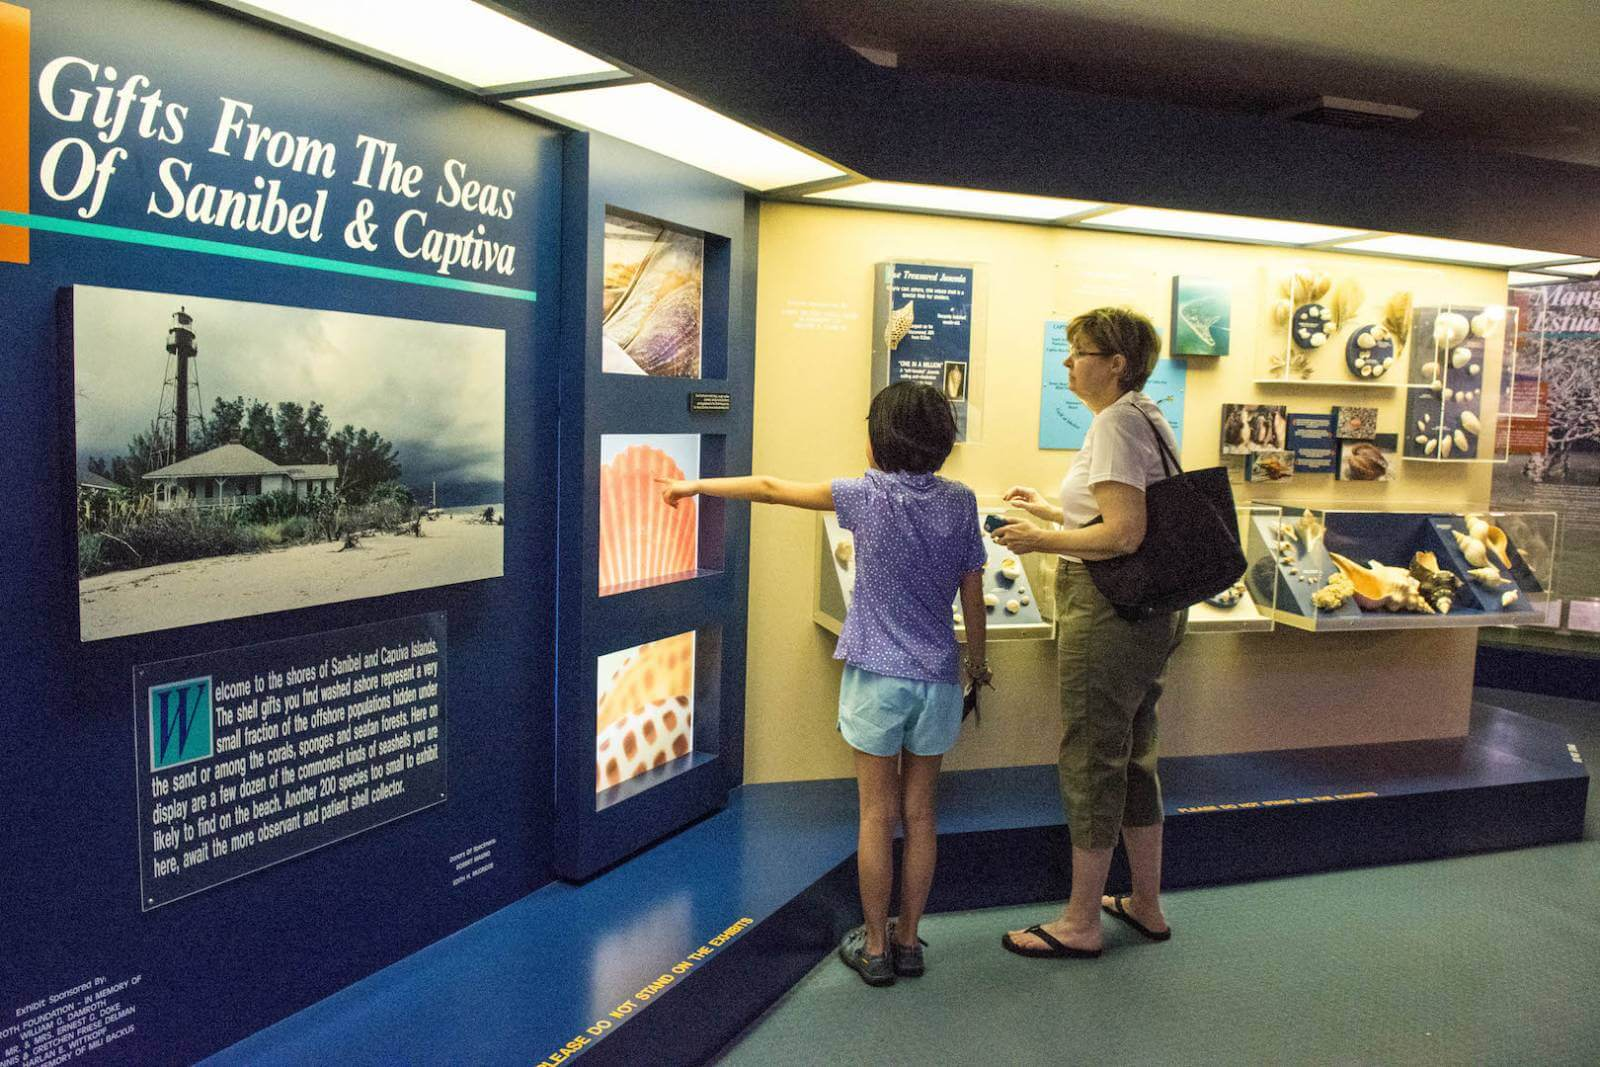 The Bailey Matthews National Shell Museum on Sanibel is the only dedicated shell museum in the USA! Photo by Debi Pittman Wilkey. #Florida #Sanibel #museum #shells #thingstodo #attractions #FortMyersFlorida